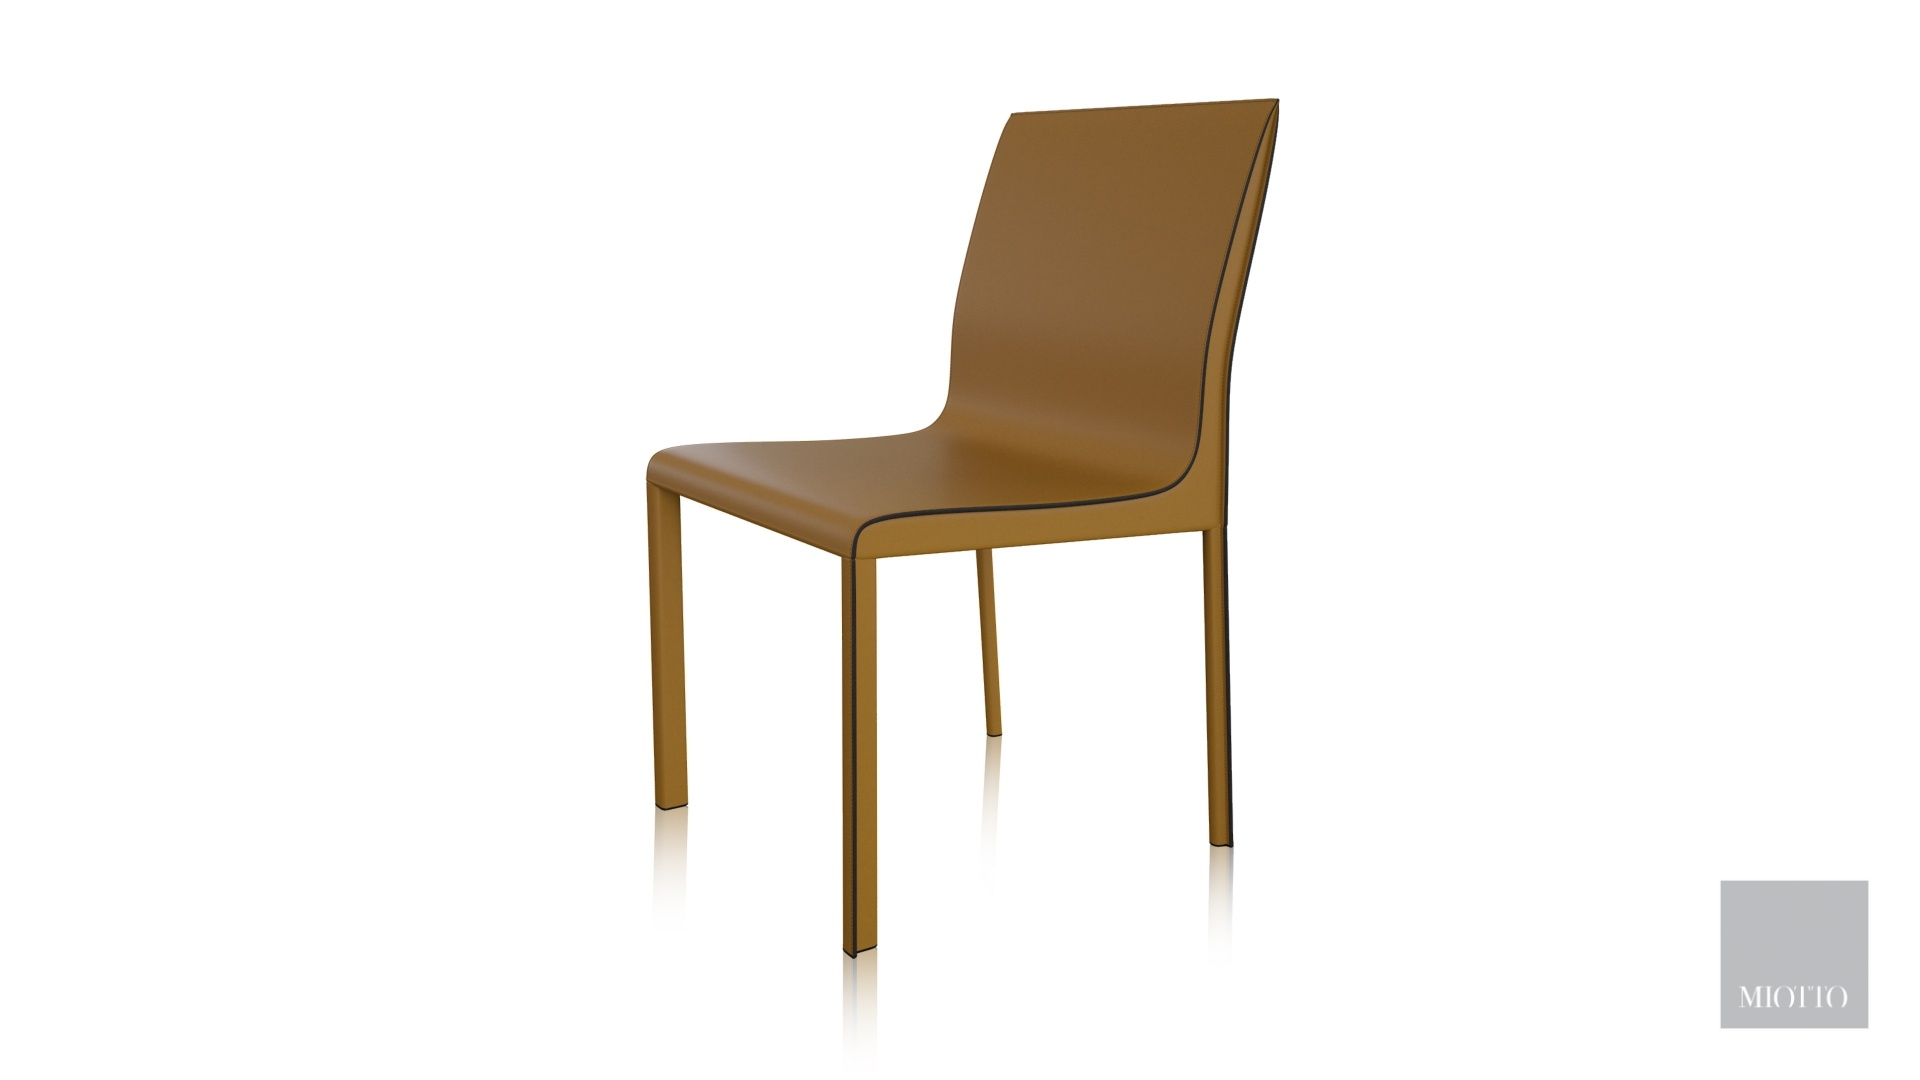 miotto_ardini DC front T miotto dining chair furniture